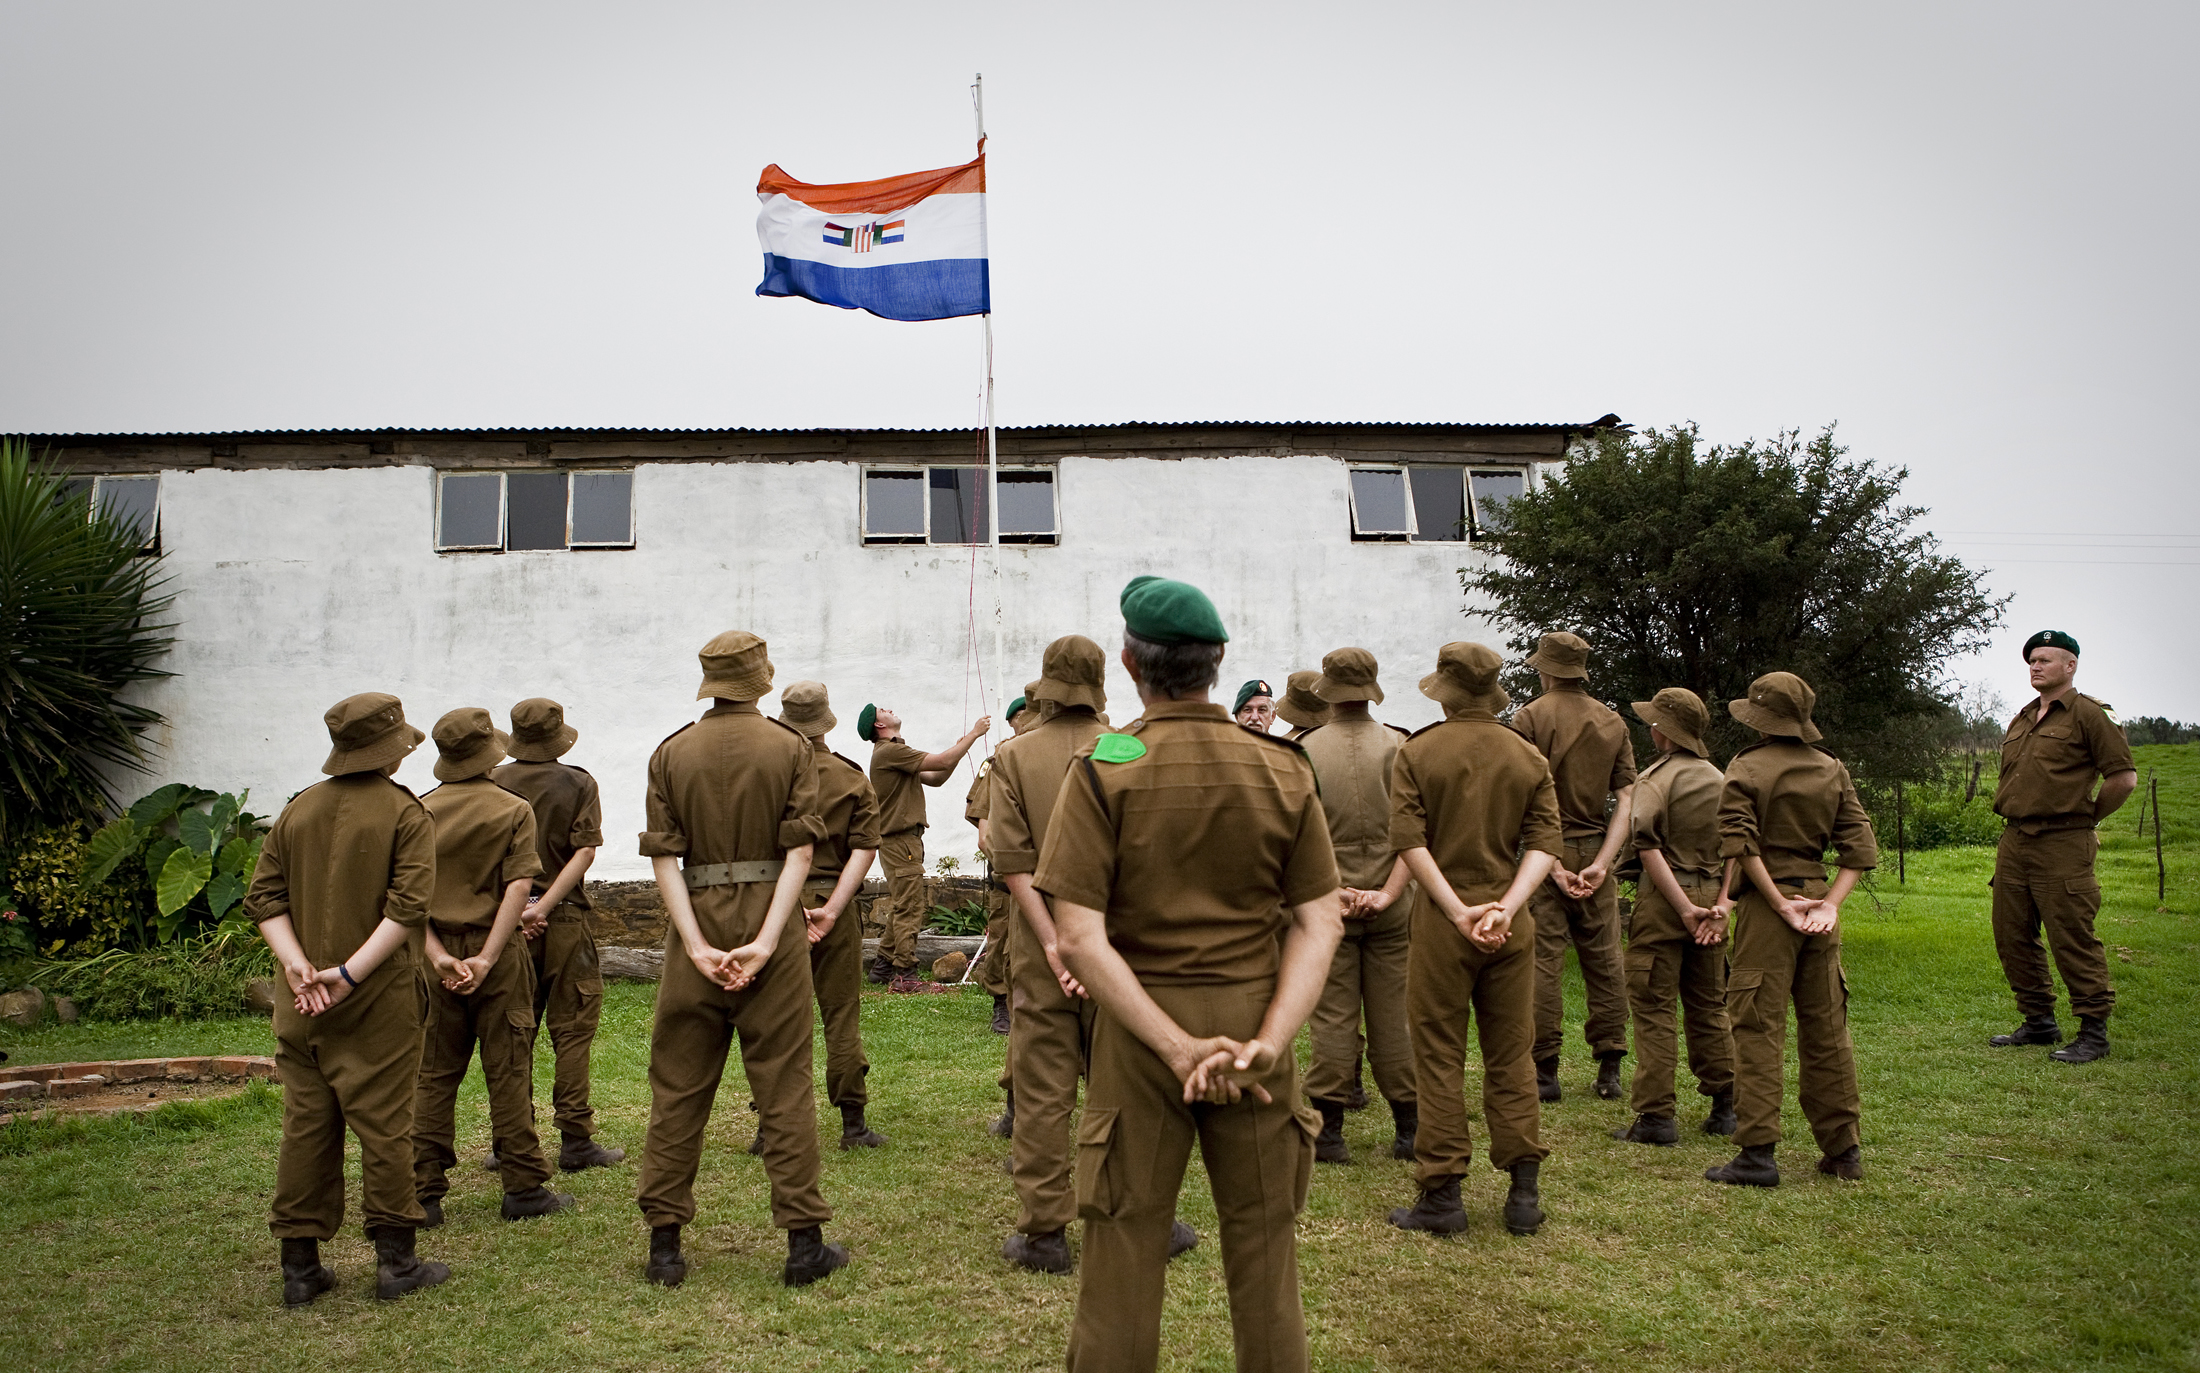 The boys at the Kommandokorps camp sing the old South African national anthem, an anthem in Afrikaans, while hoisting the flag during the camp.